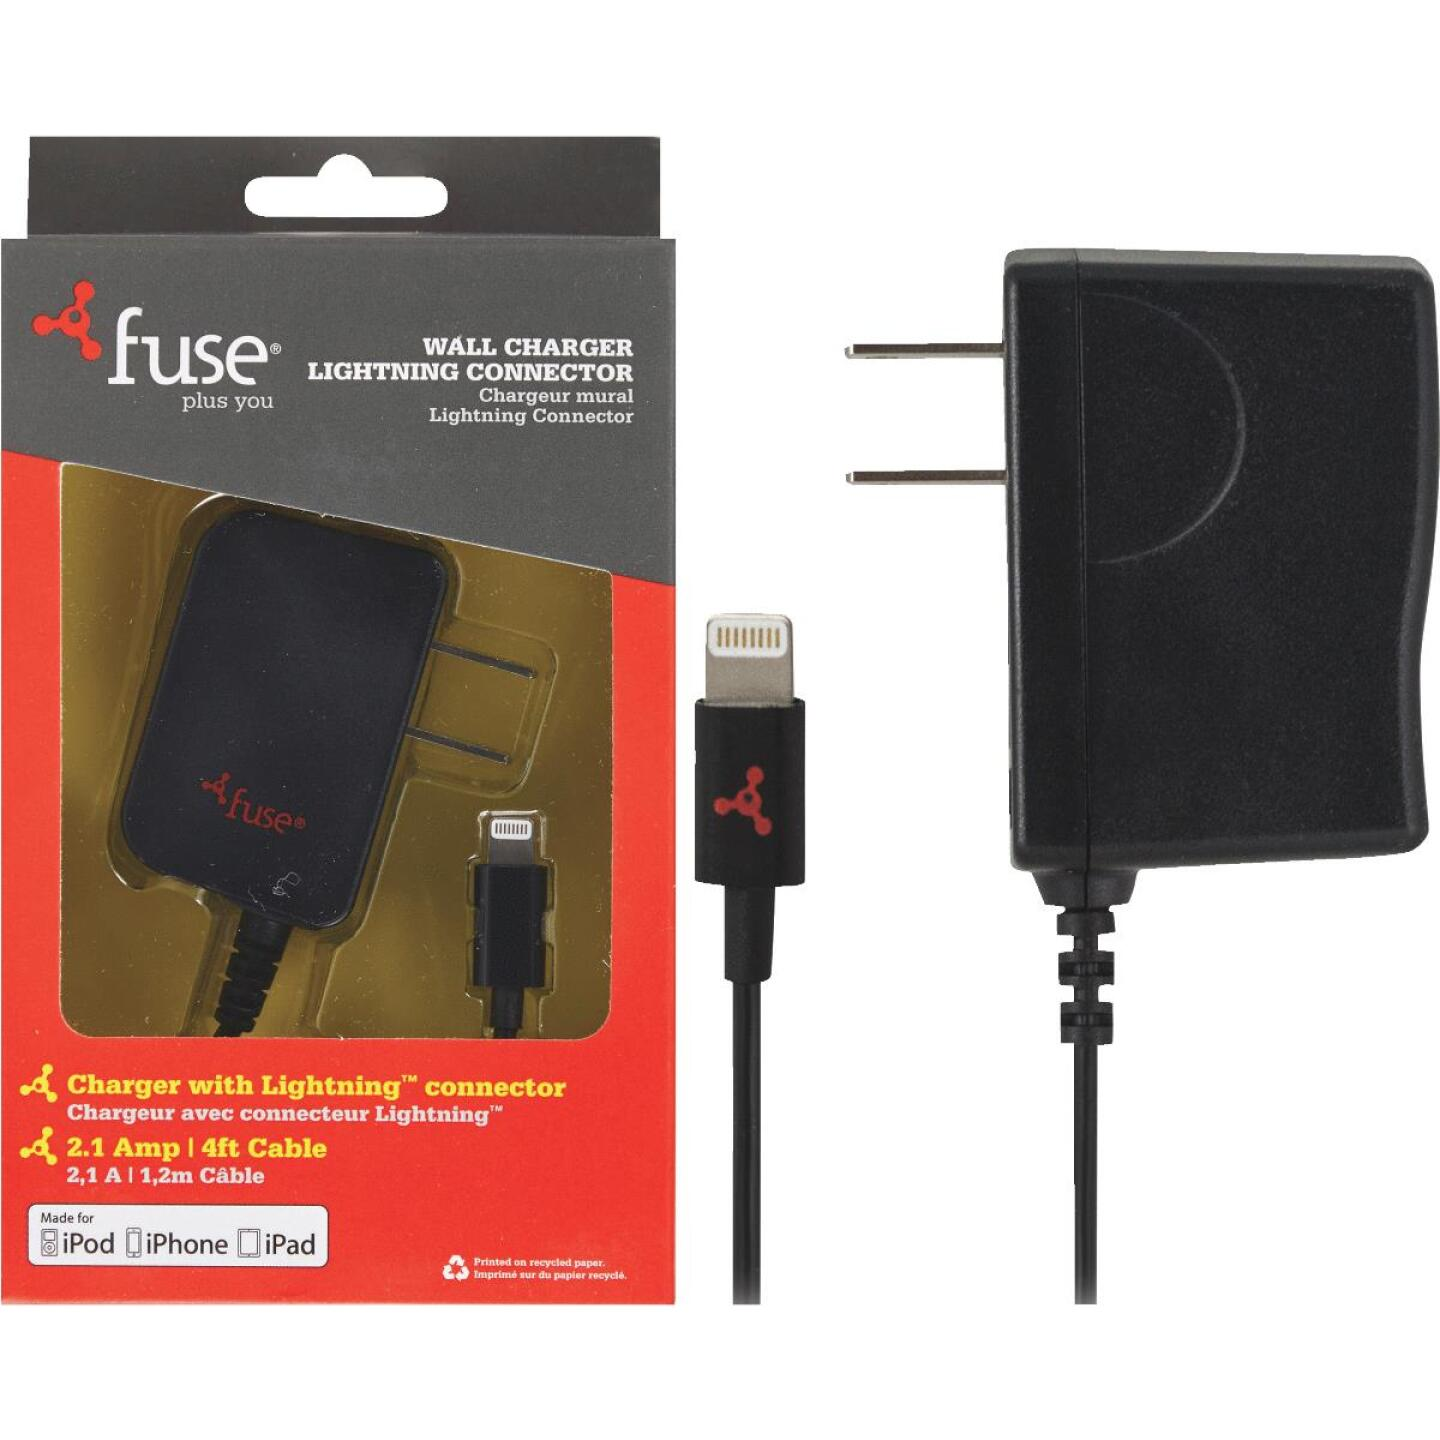 Fuse Lightning Black Wall USB Charger Image 1